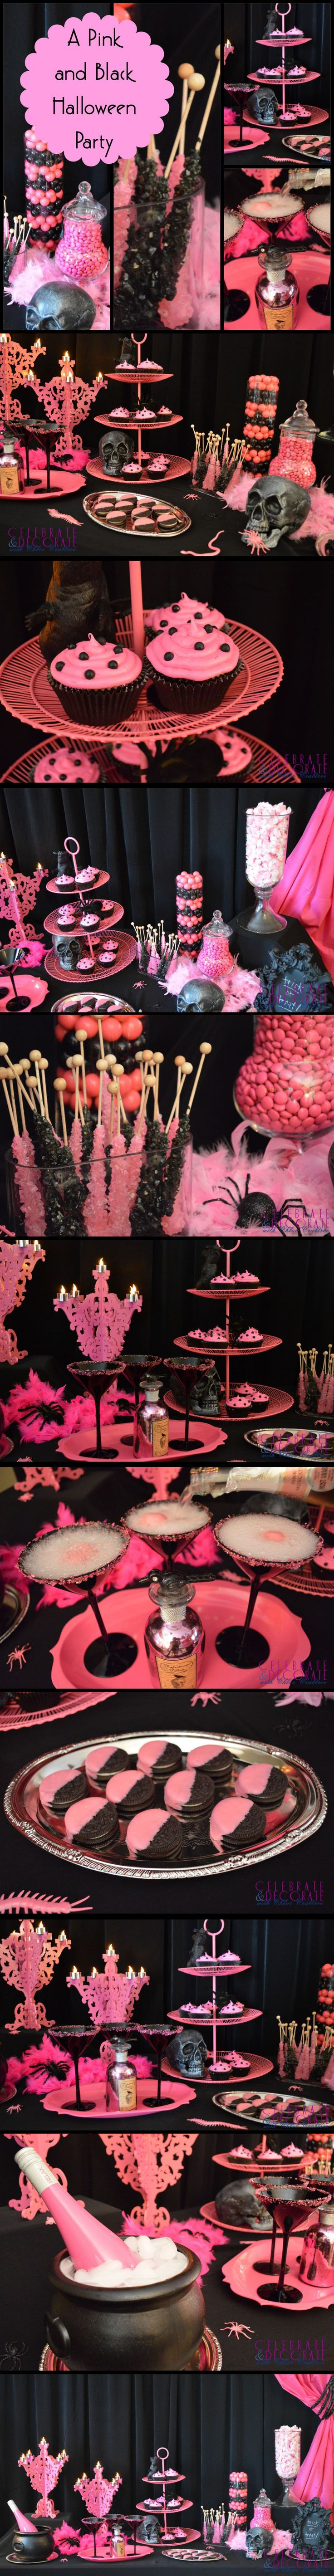 Best 25+ Pink halloween ideas on Pinterest | Pink candy, Pink ...